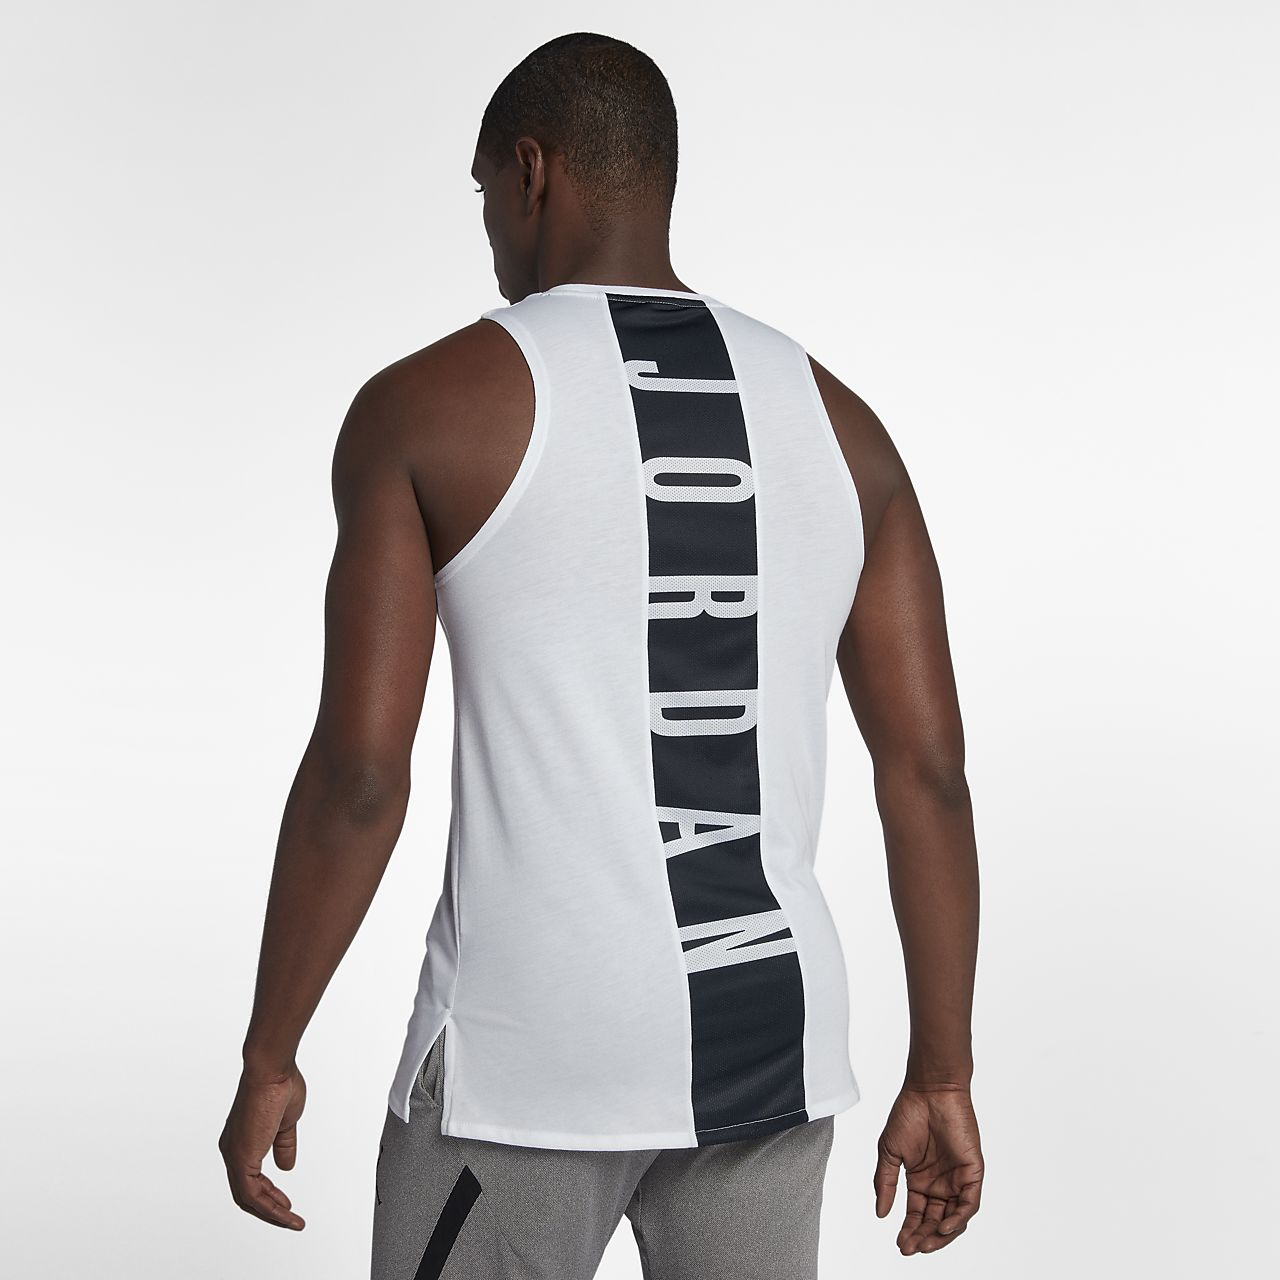 7df6a98e6c20f Jordan 23 Alpha Men s Sleeveless Training Top. Nike.com AT